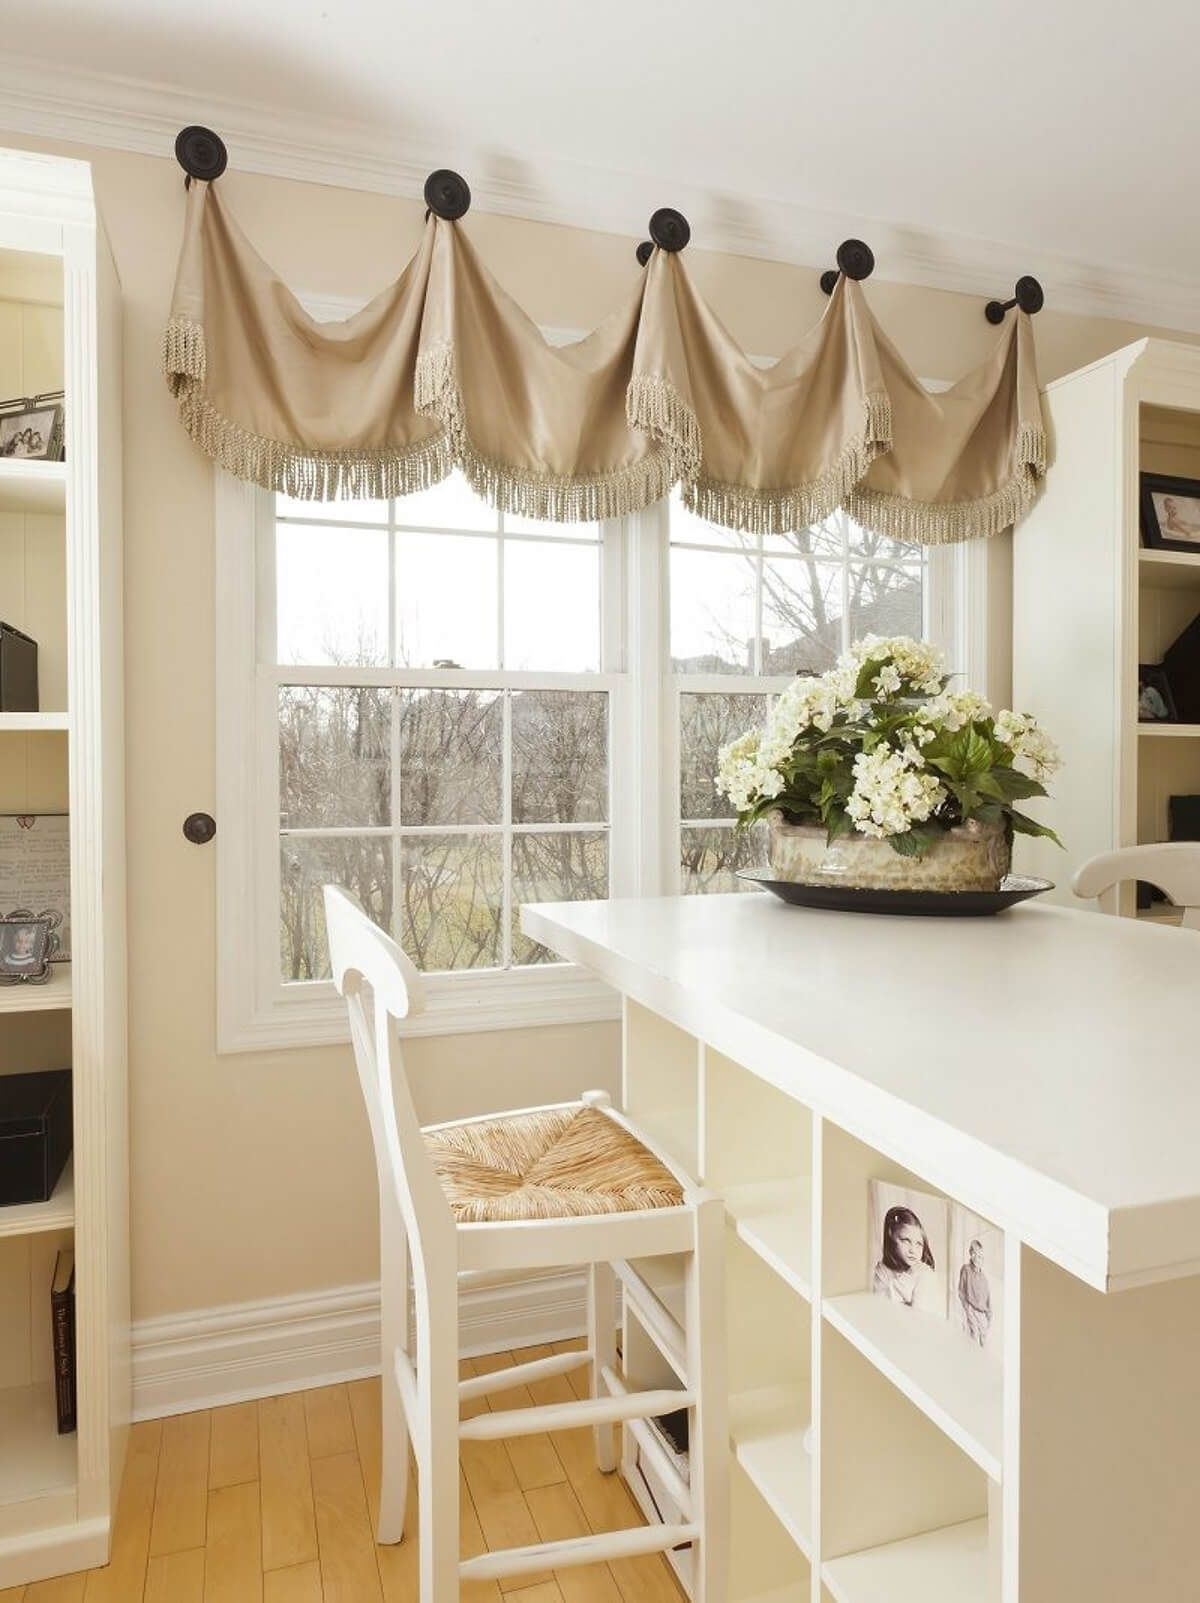 17 Farmhouse Window Treatment Ideas to Bring Old-Fashioned Charm